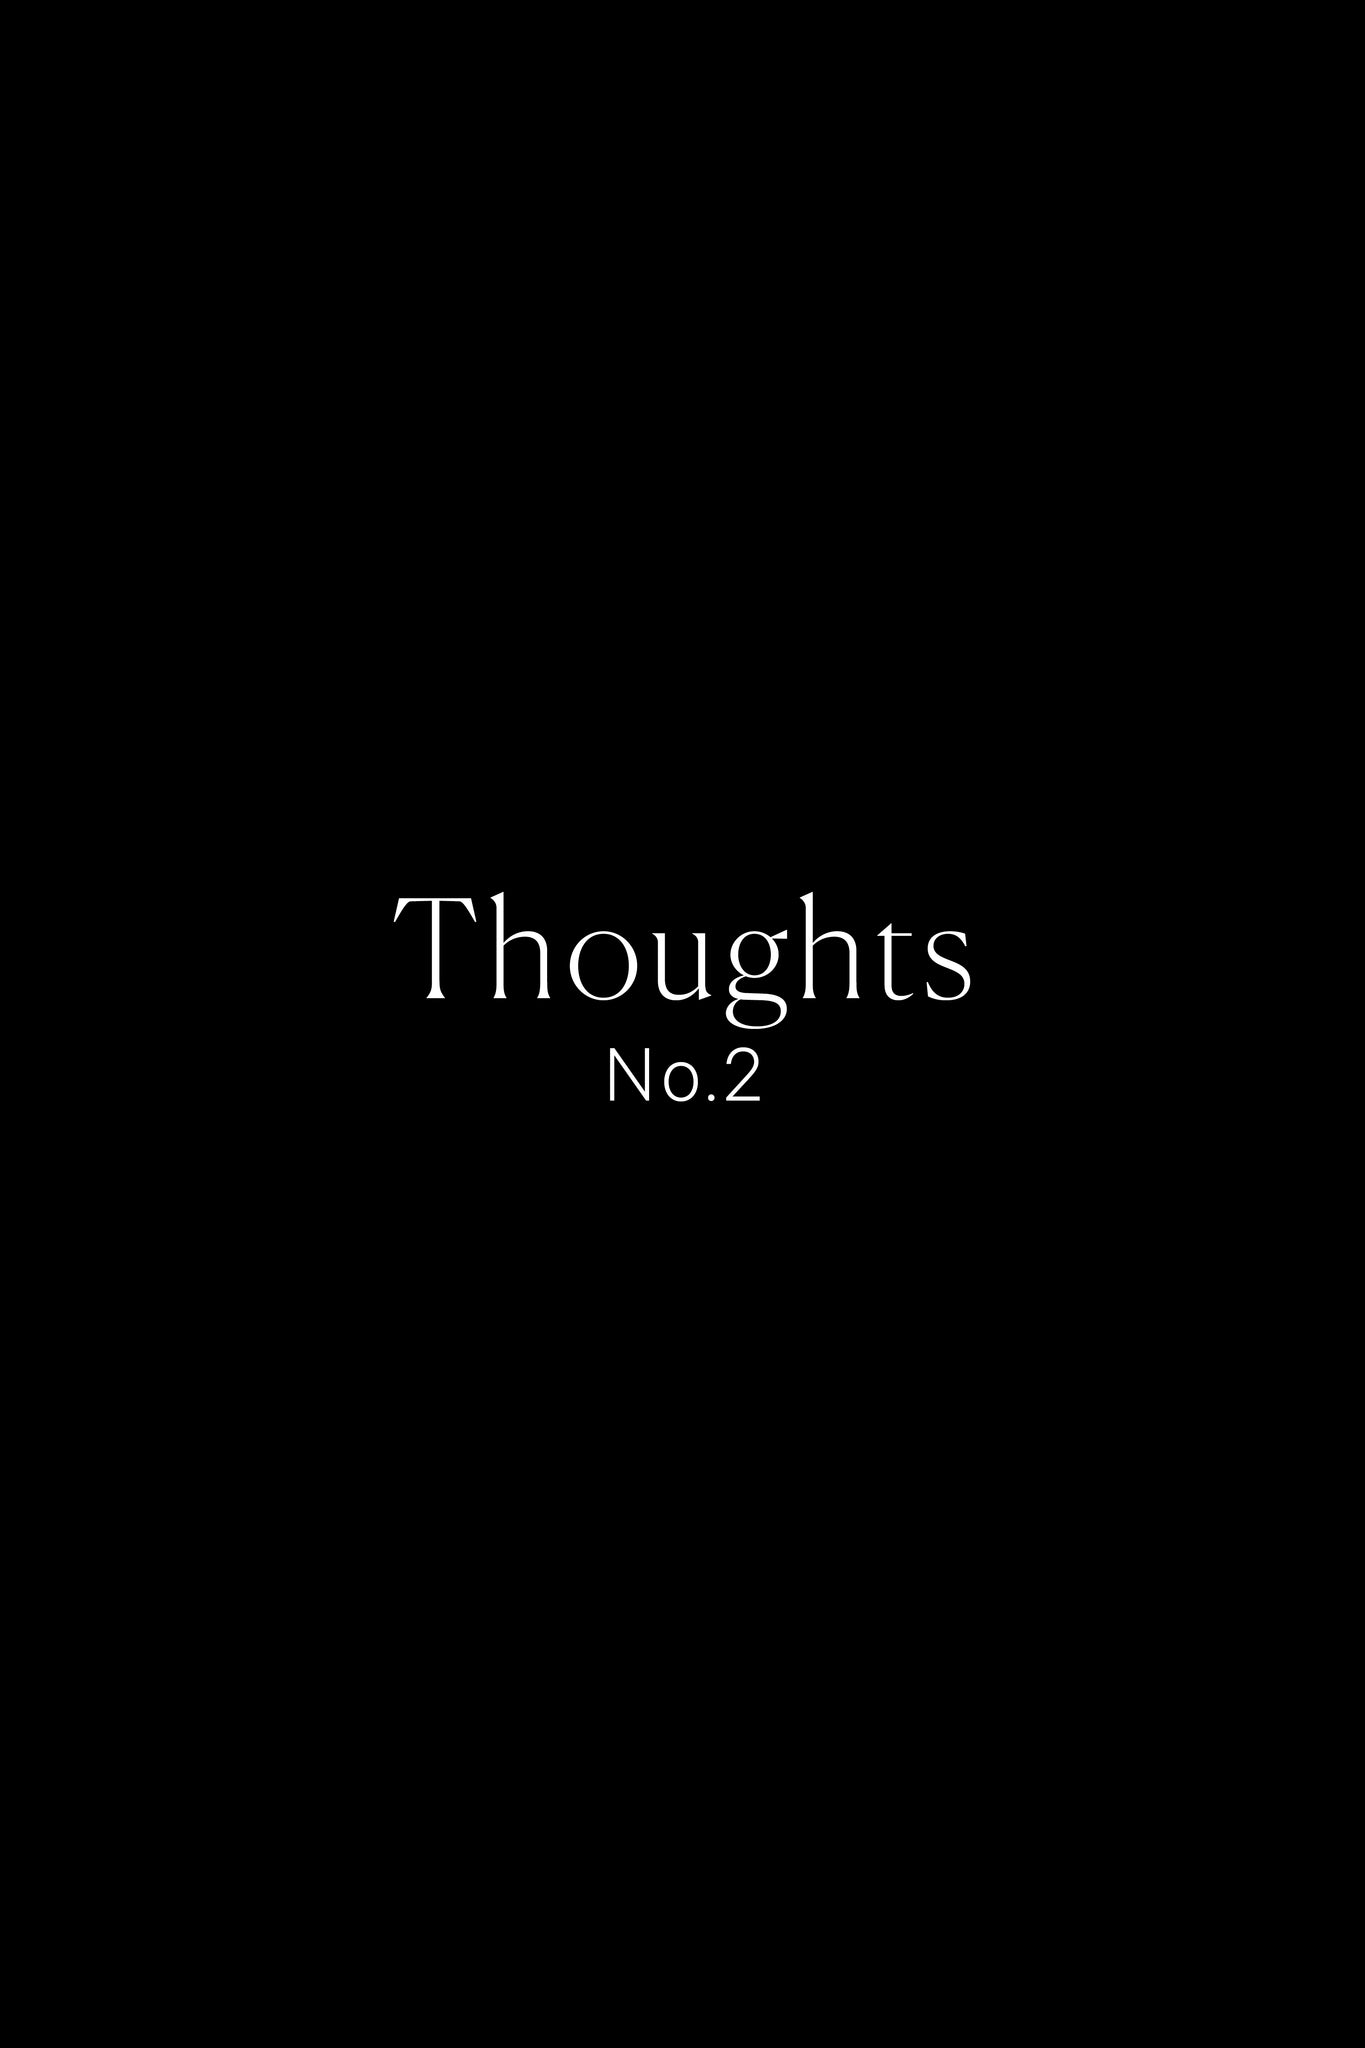 Thoughts – No.2